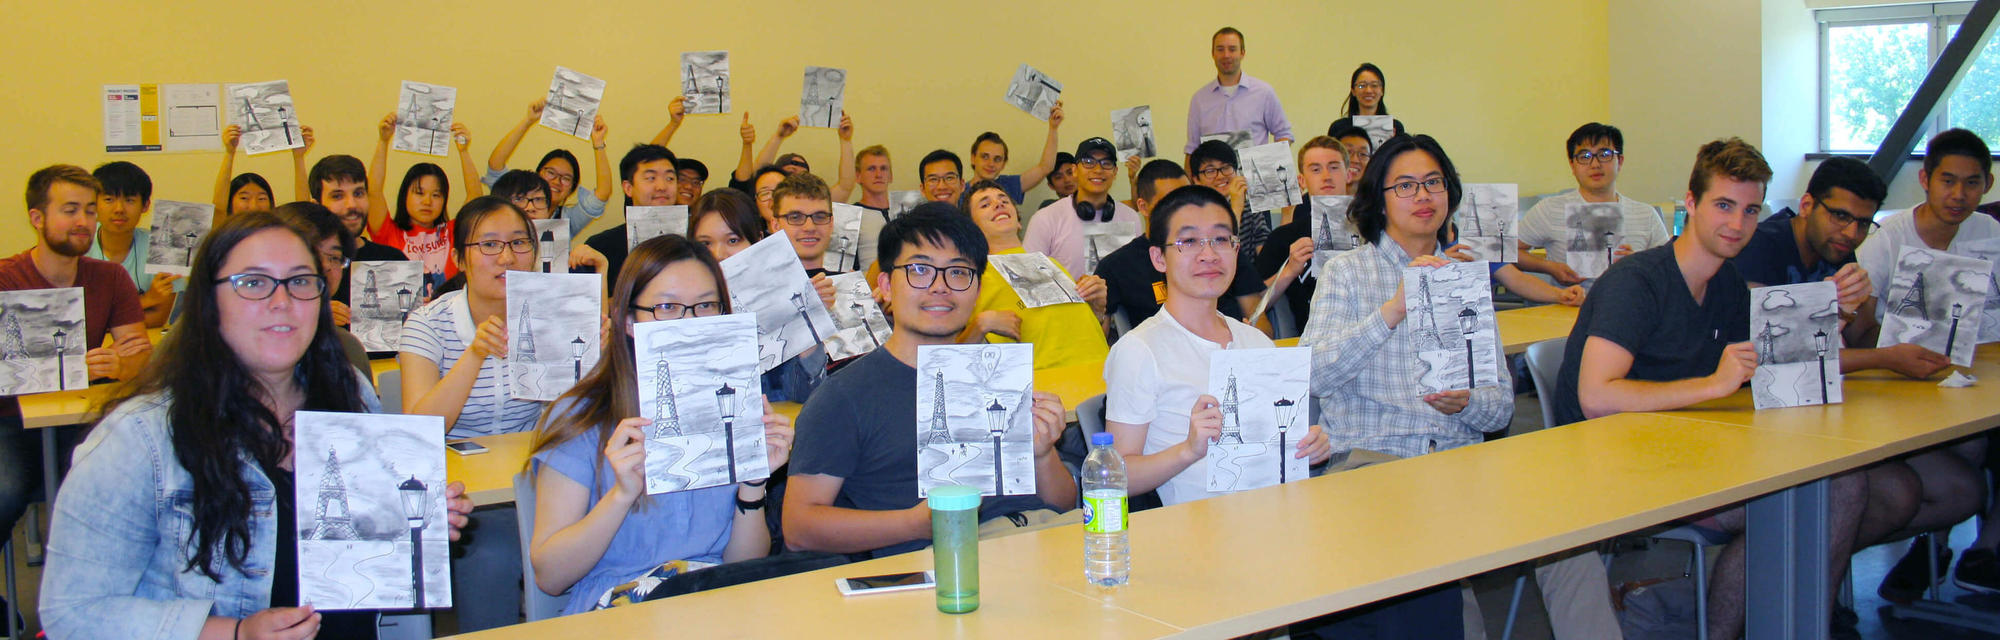 Students holding up their drawings